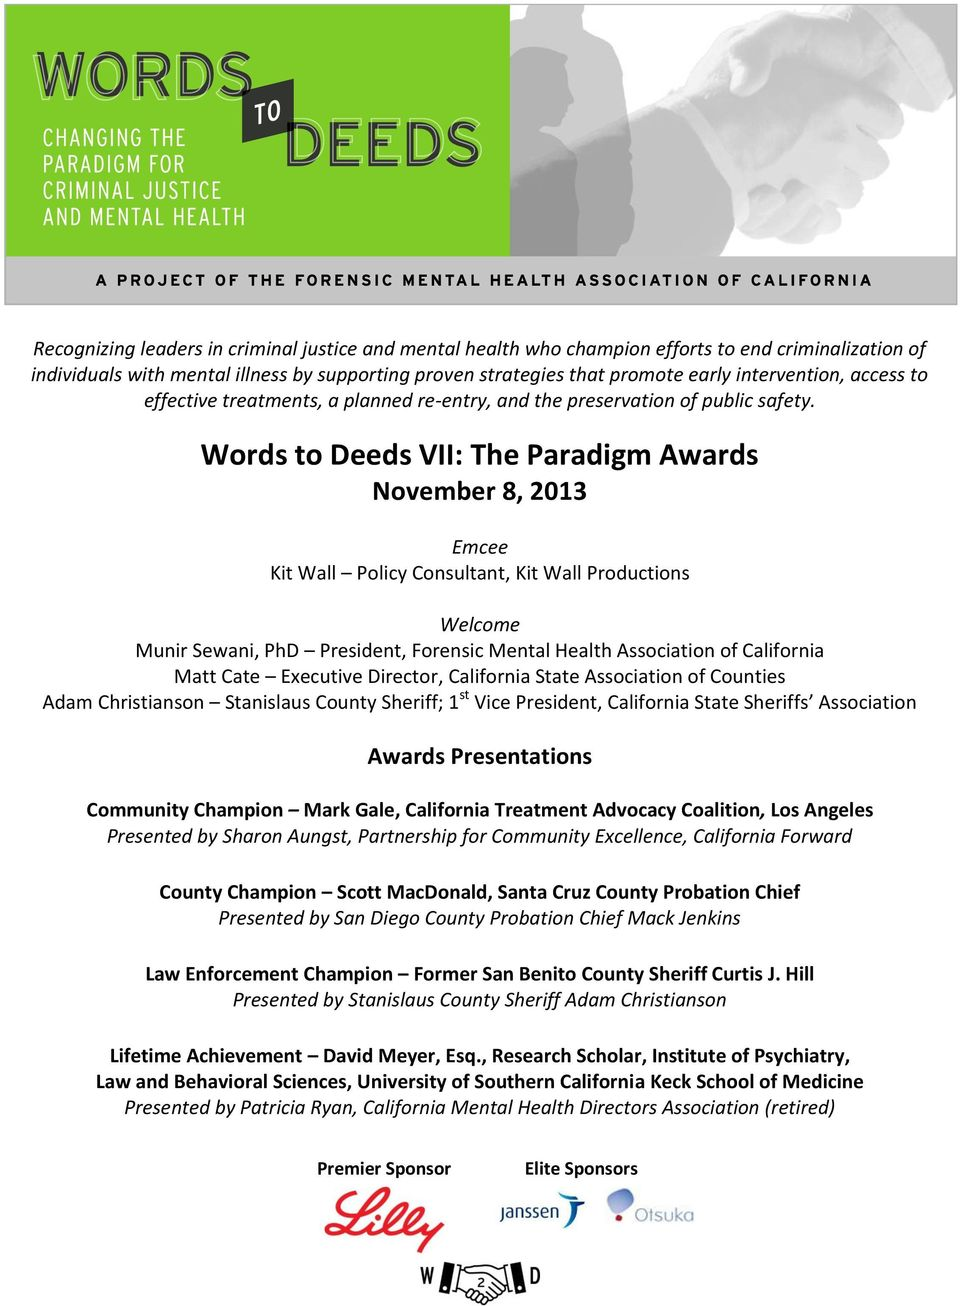 Words to Deeds VII: The Paradigm Awards November 8, 2013 Emcee Kit Wall Policy Consultant, Kit Wall Productions Welcome Munir Sewani, PhD President, Forensic Mental Health Association of California